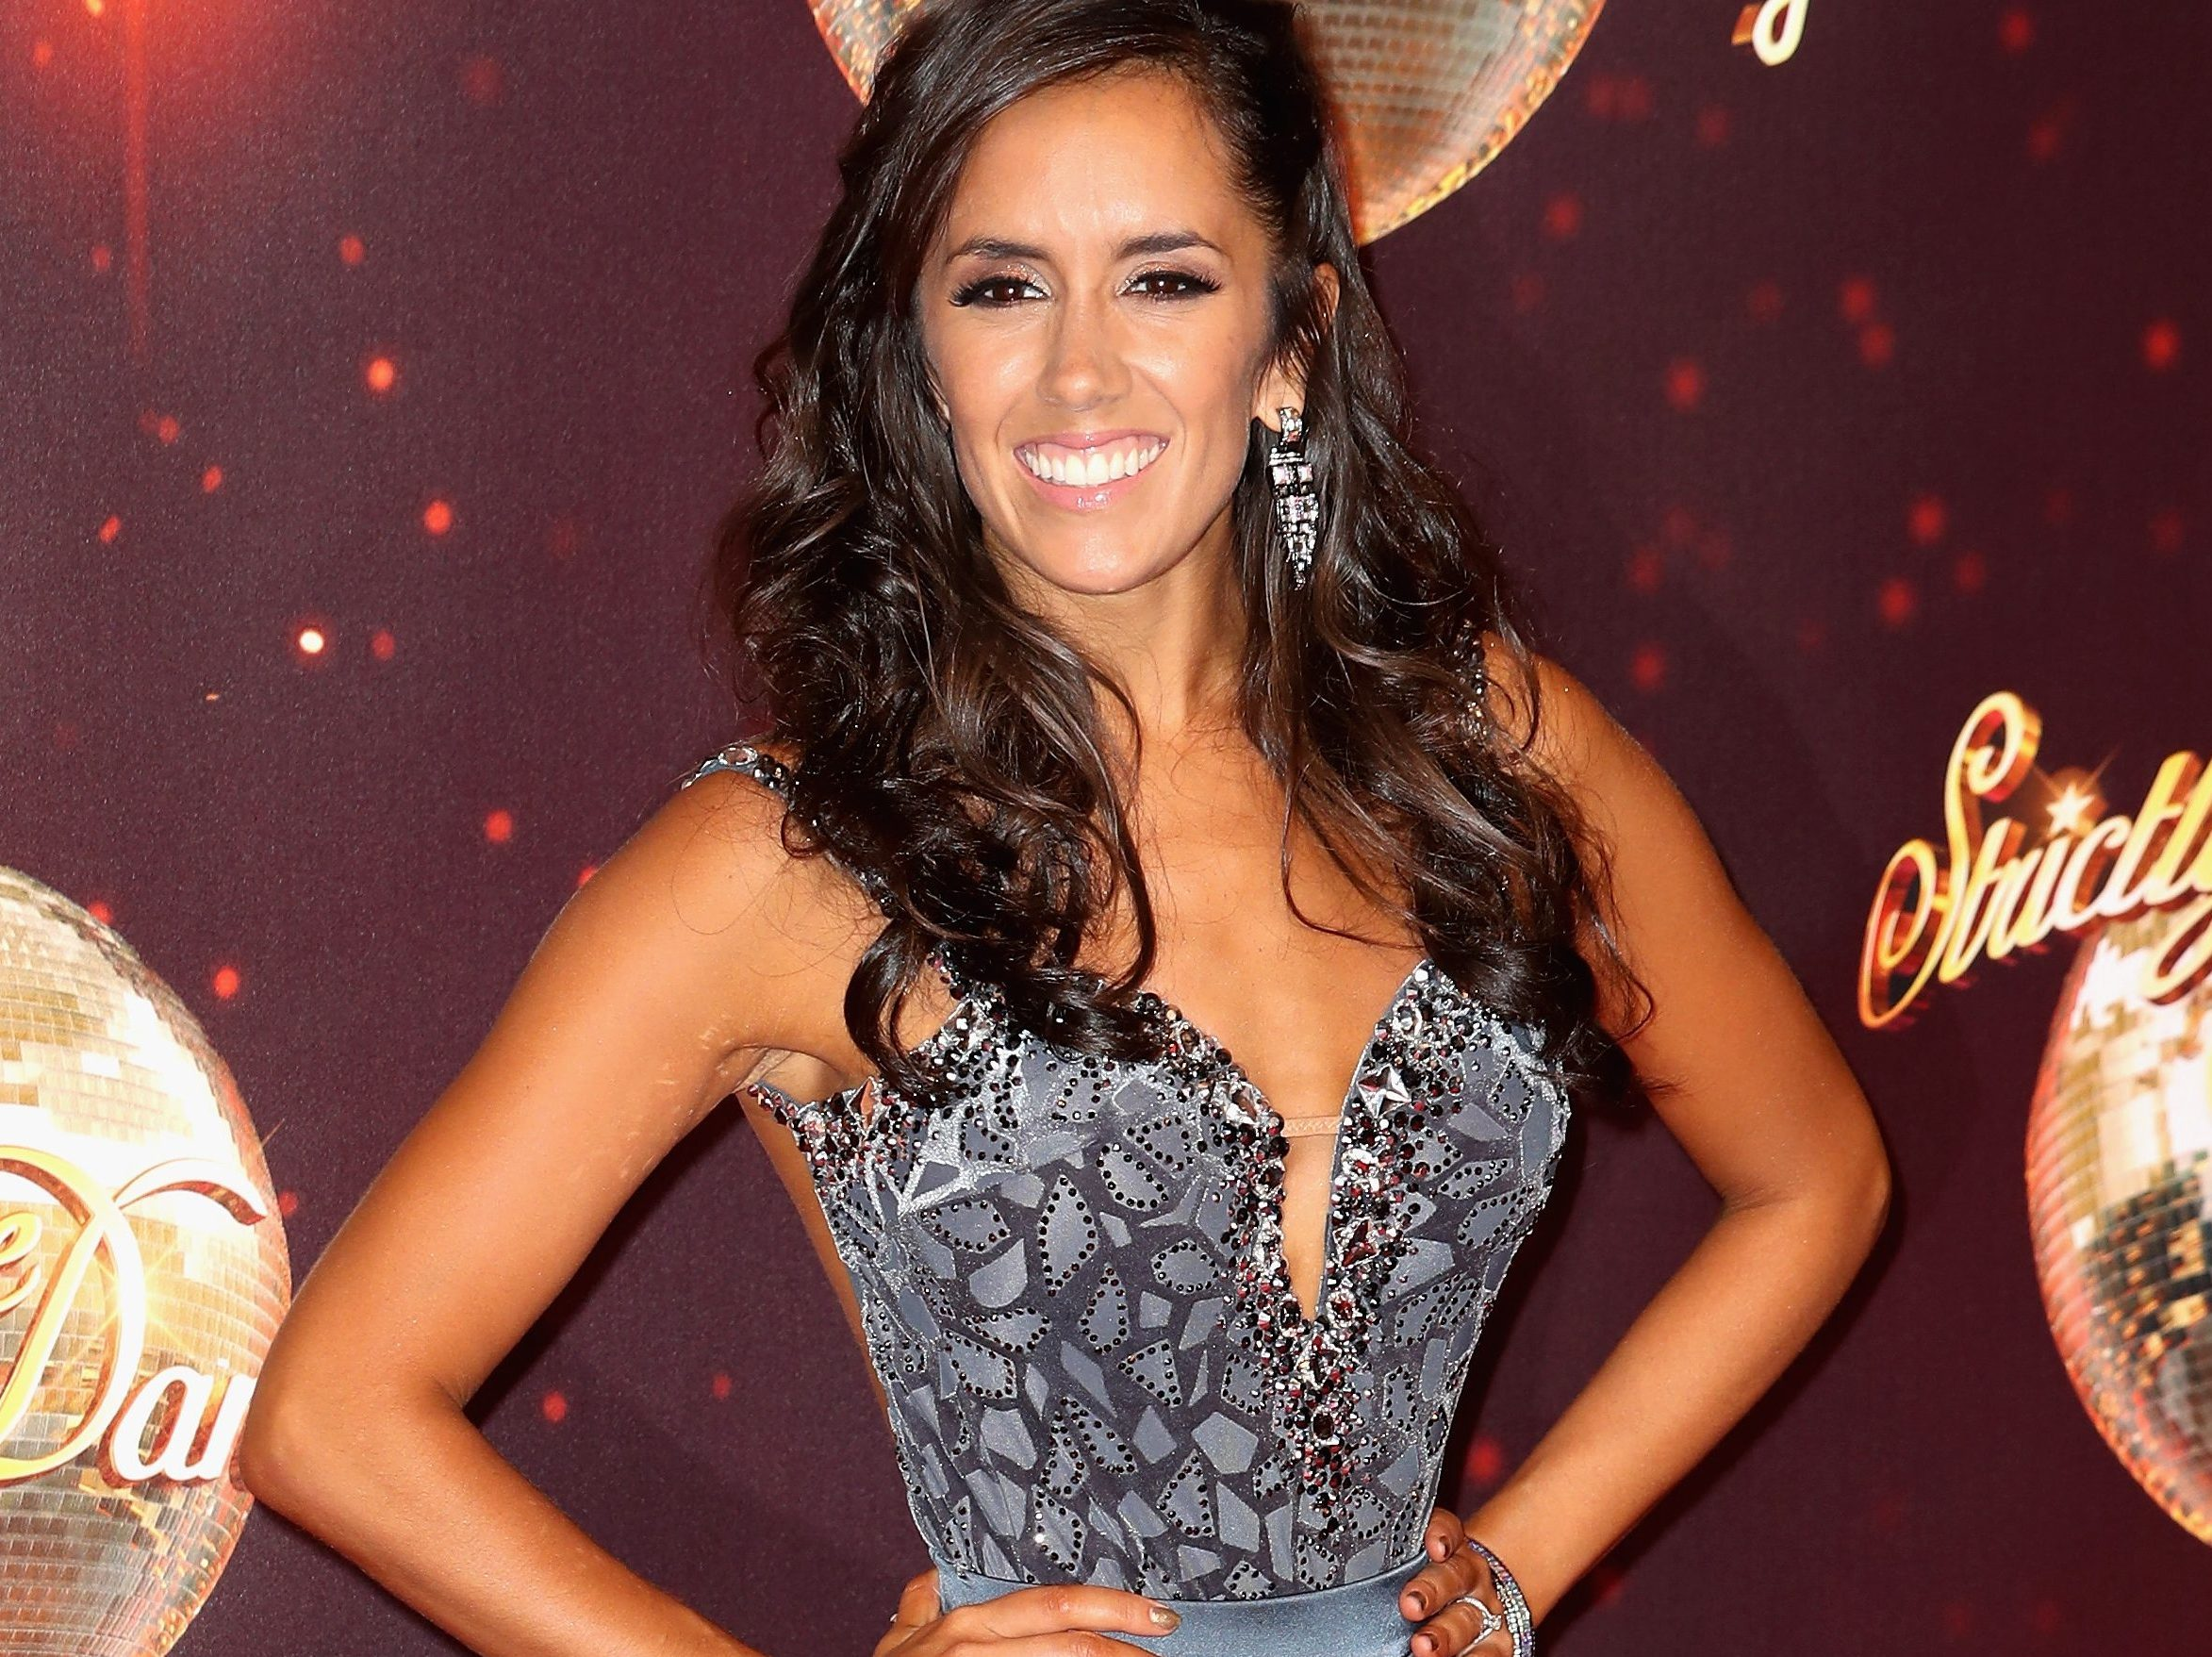 Janette Manrara arrives for the launch of 'Strictly Come Dancing 2016'  (Photo by Chris Jackson/Getty Images)